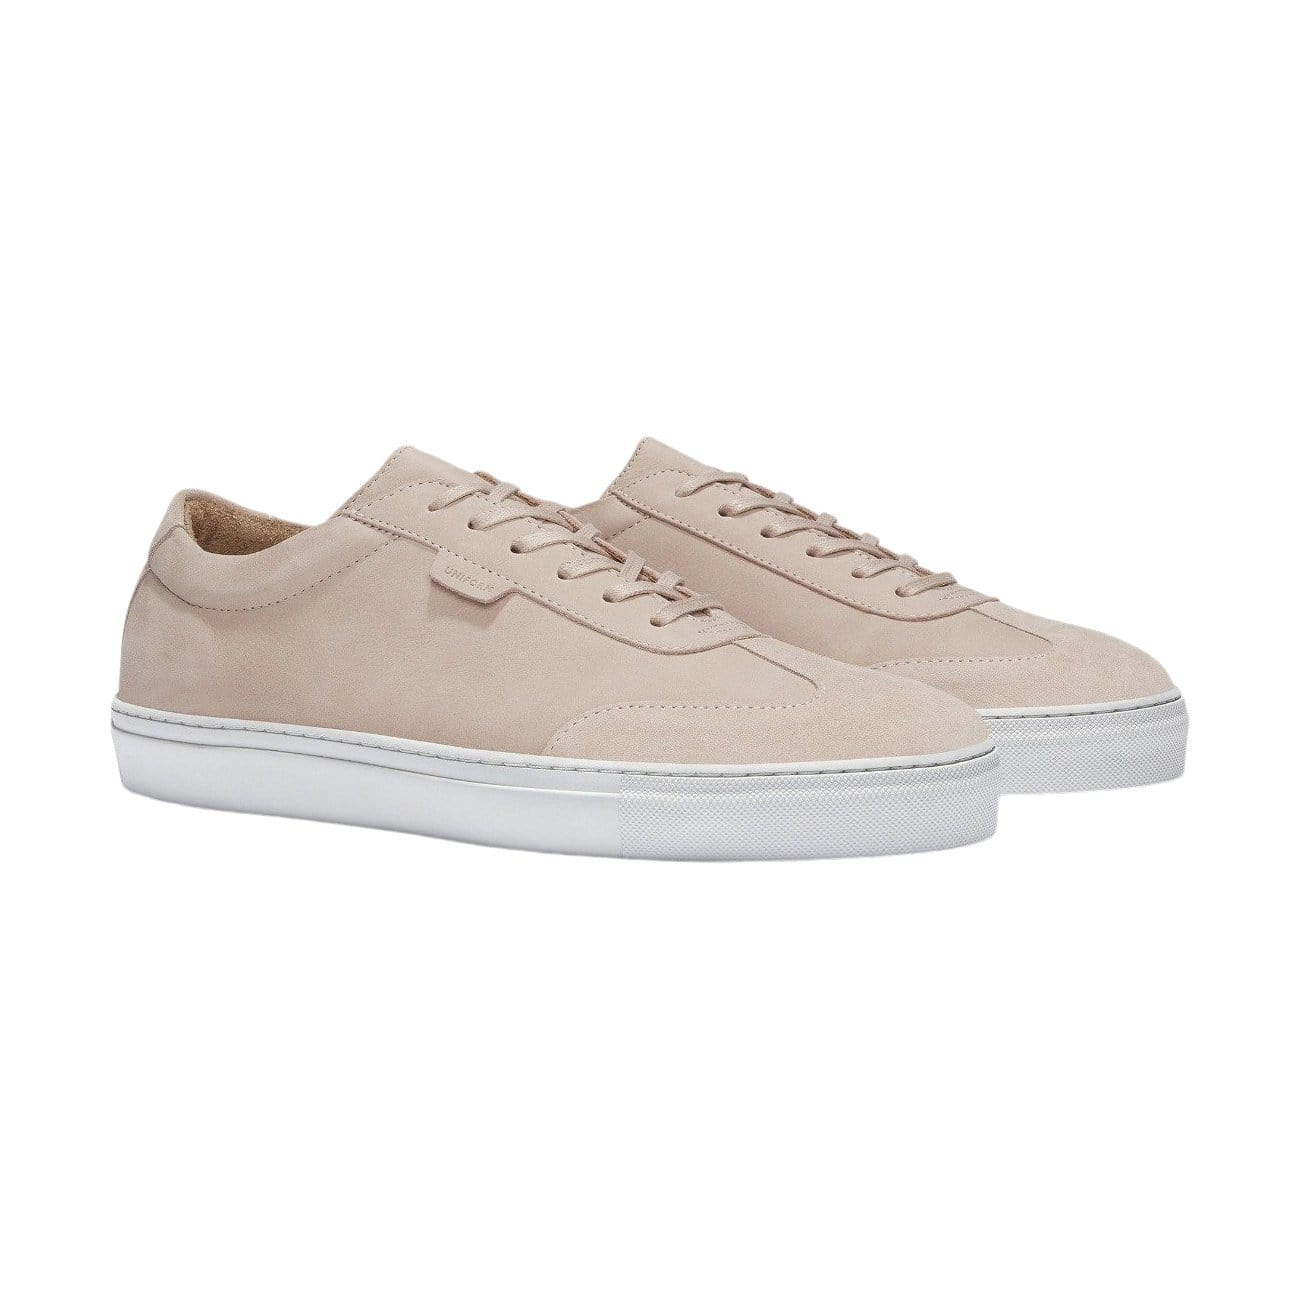 UNIFORM STANDARD SERIES 3 Women's SERIES 3 Blush Nubuck Sneaker